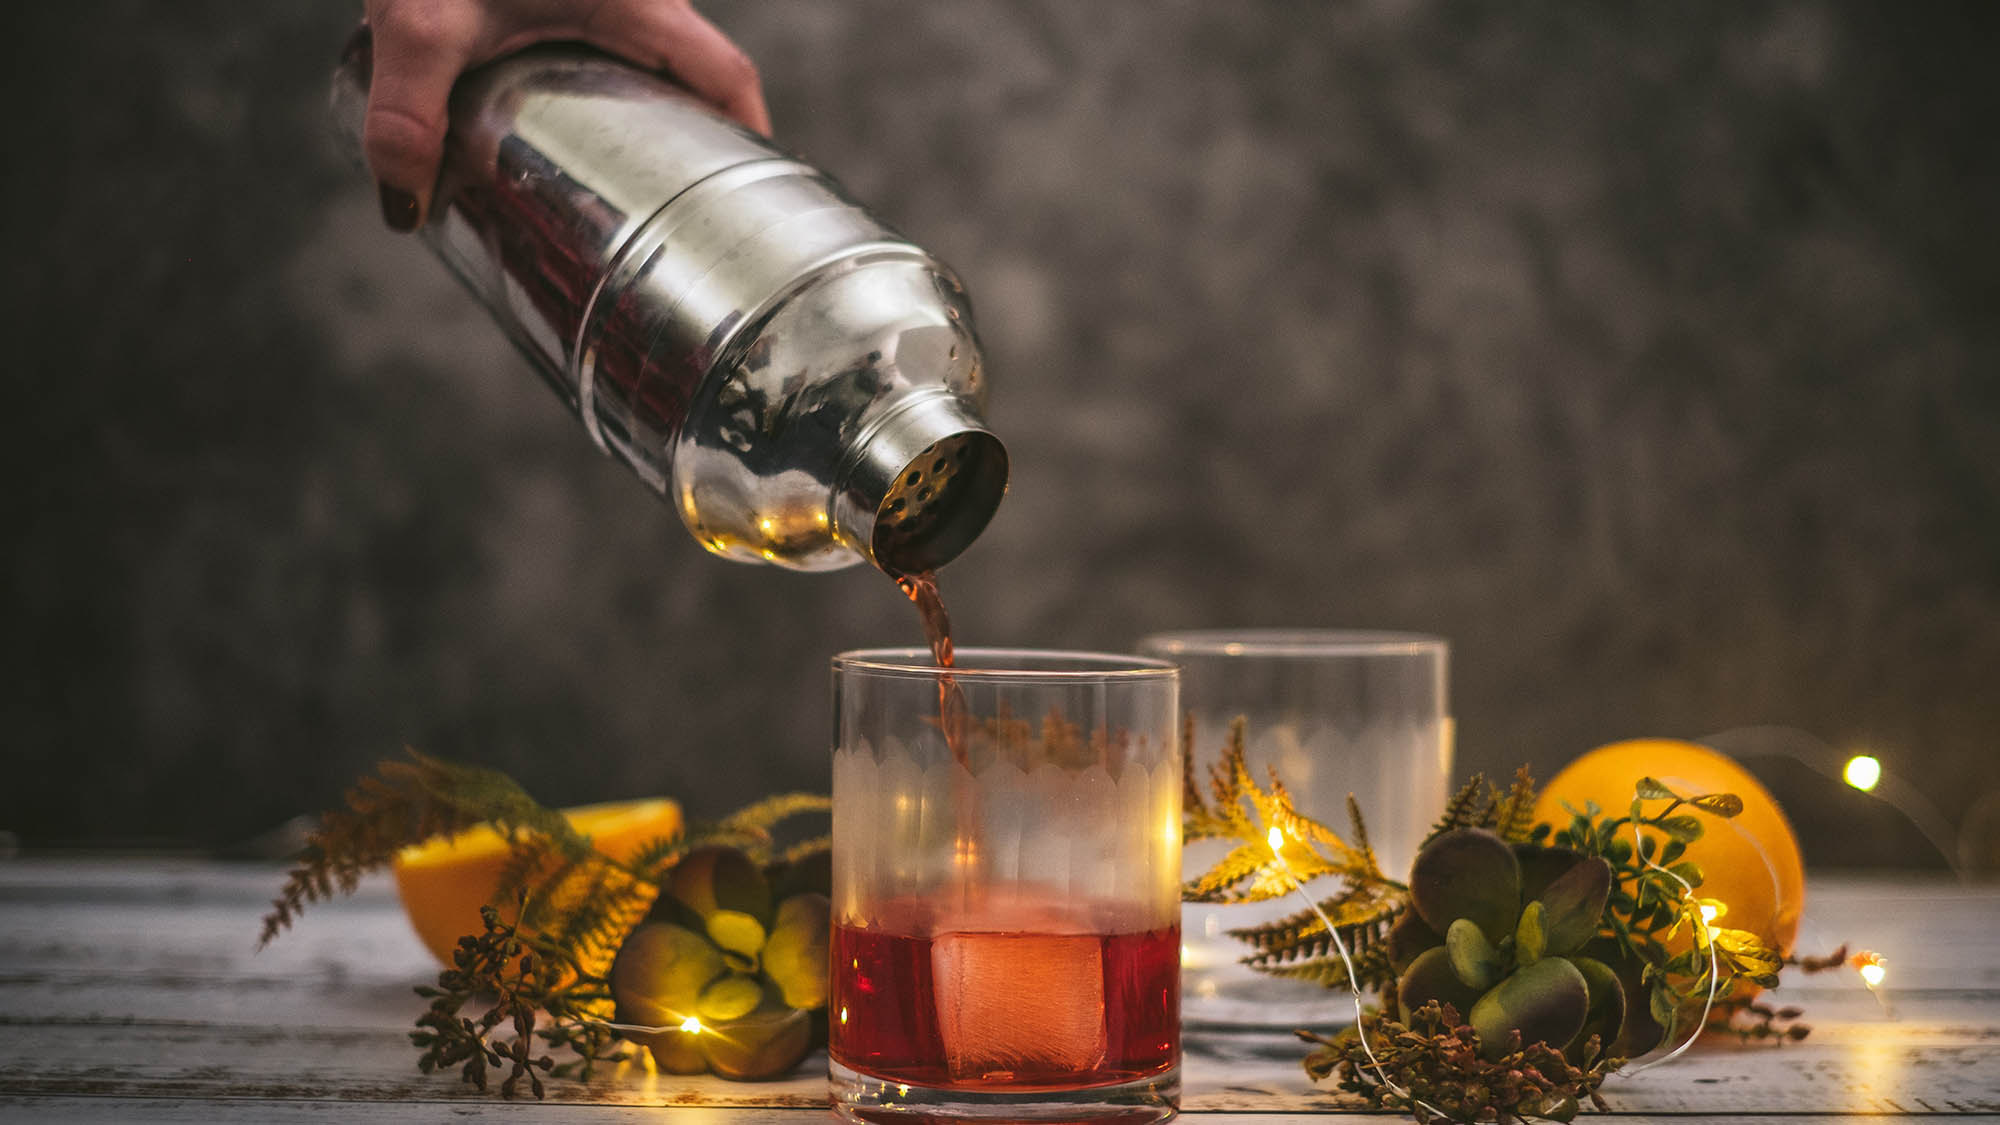 Negroni being poured from metal shaker into glass with ice cube amid sparkling lights and succulents